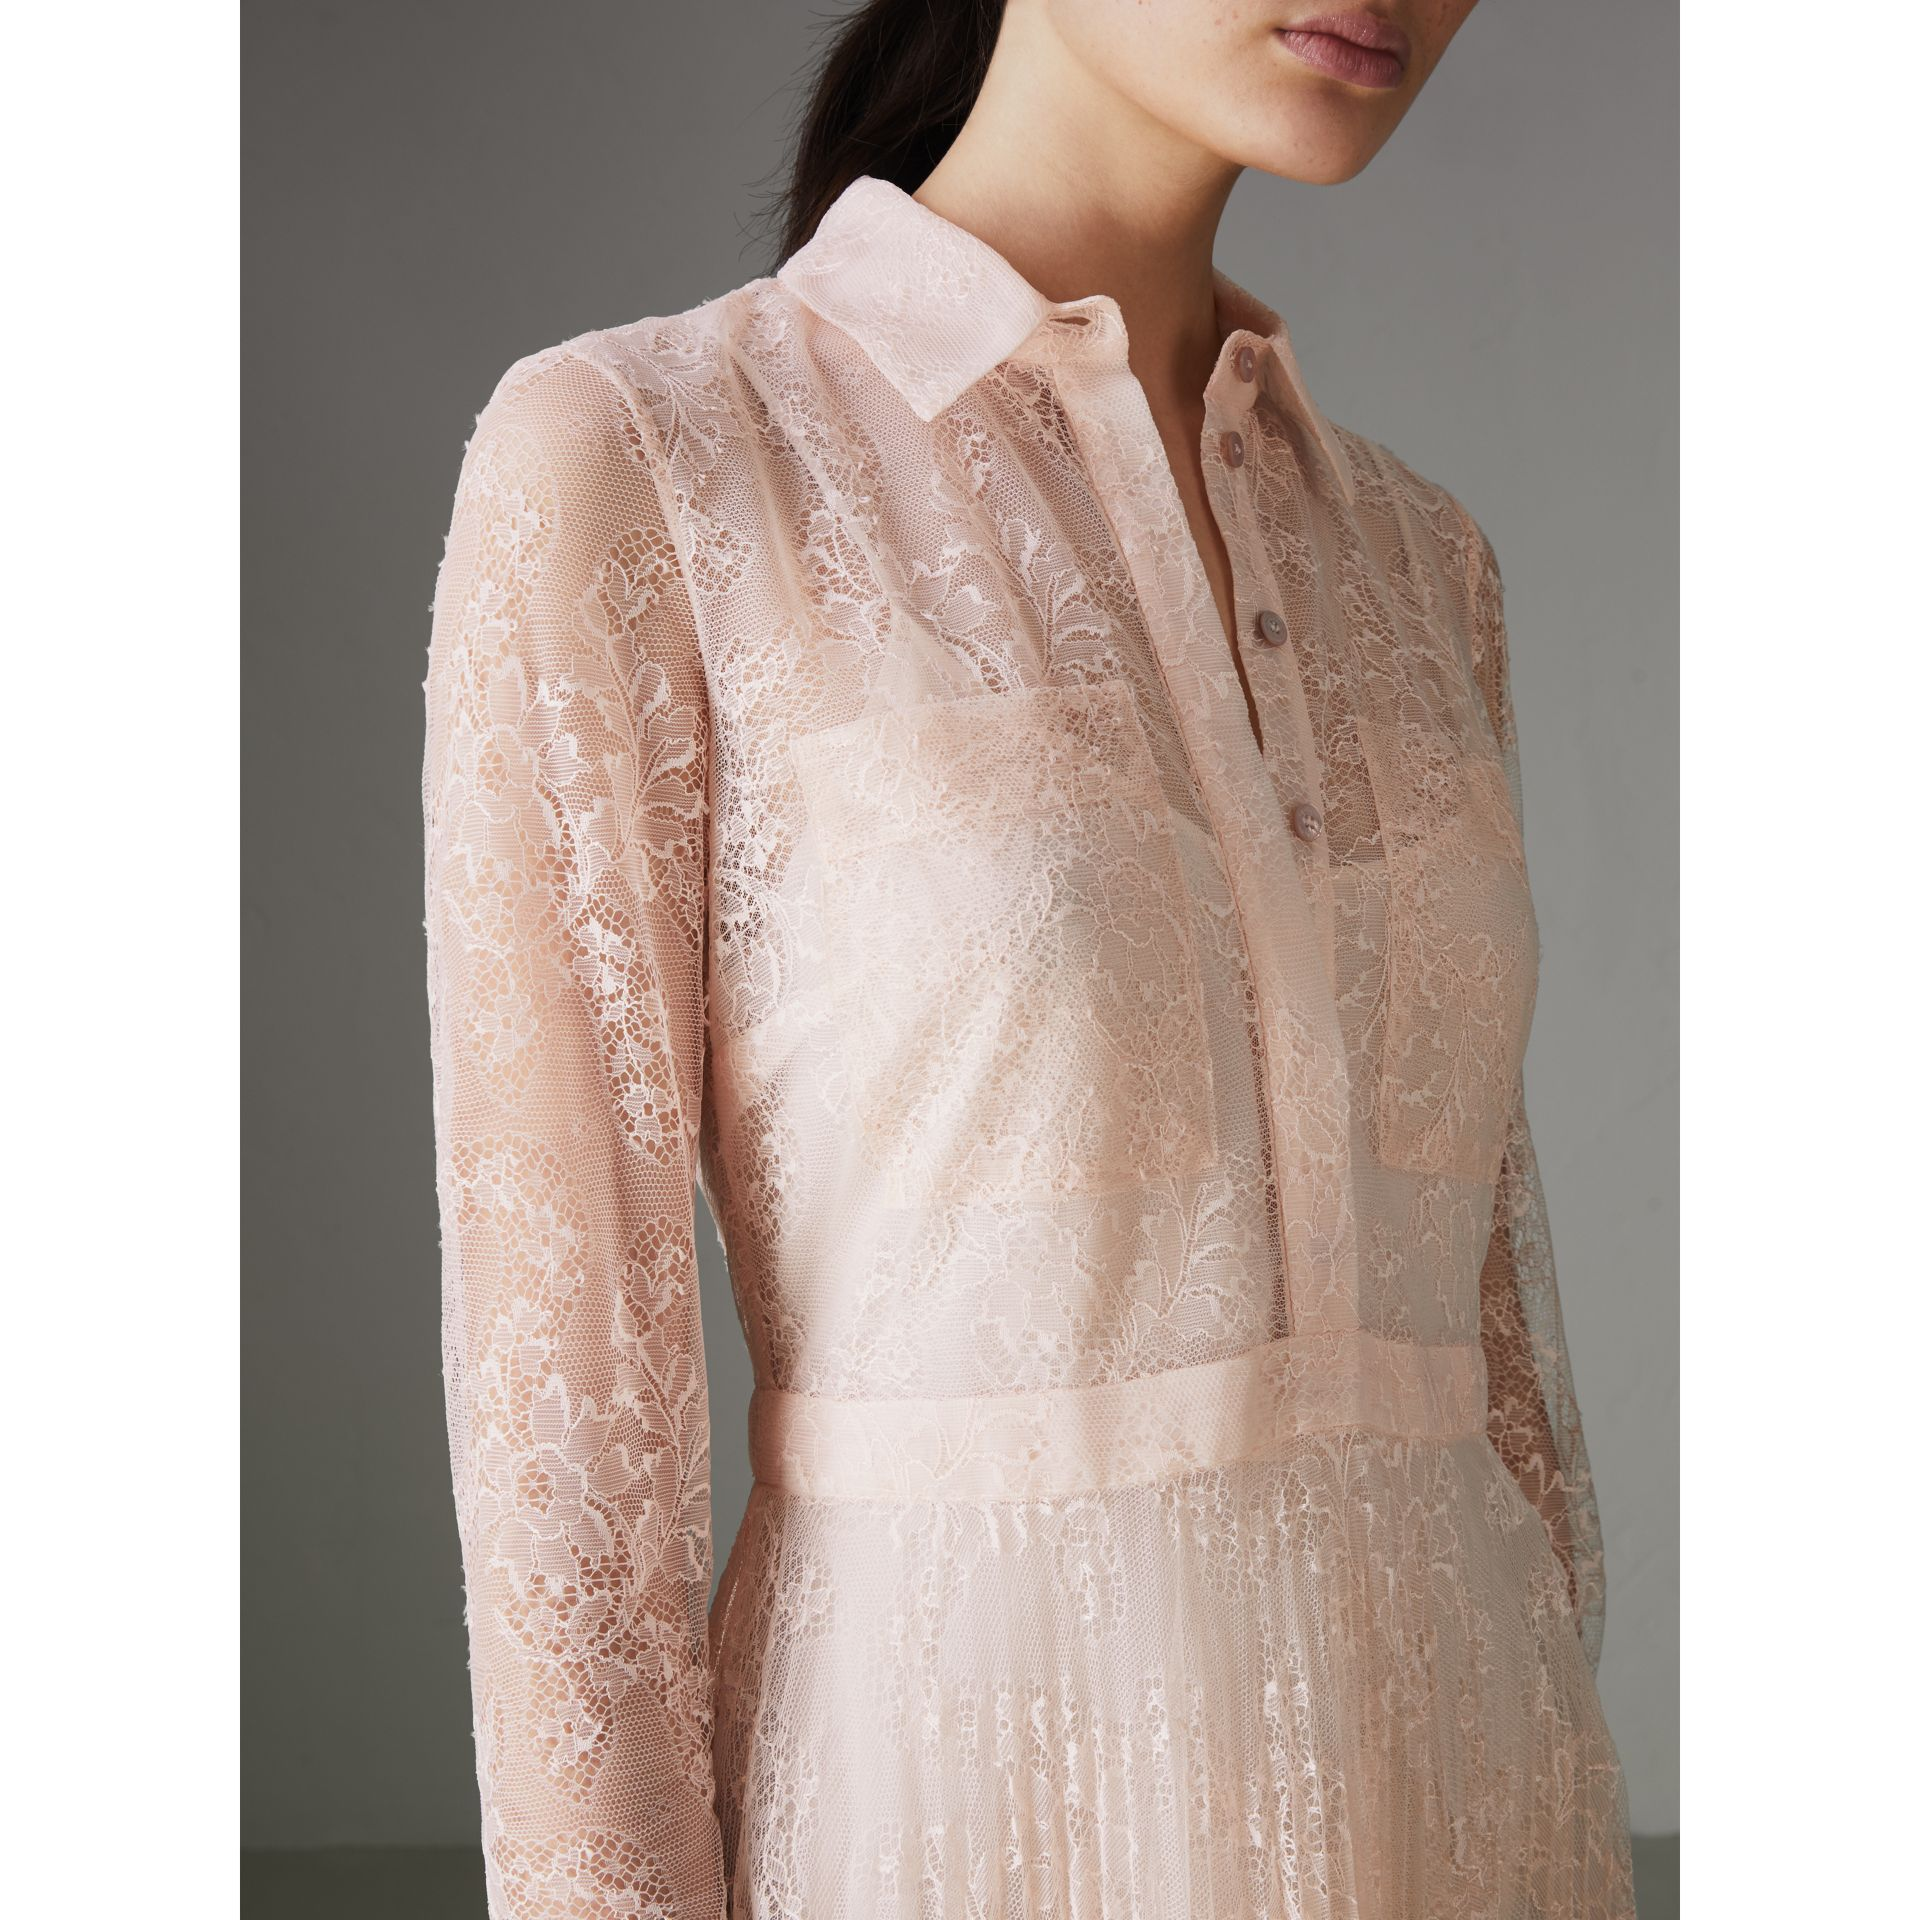 Pleated Lace Dress in Powder Pink - Women | Burberry Australia - gallery image 1